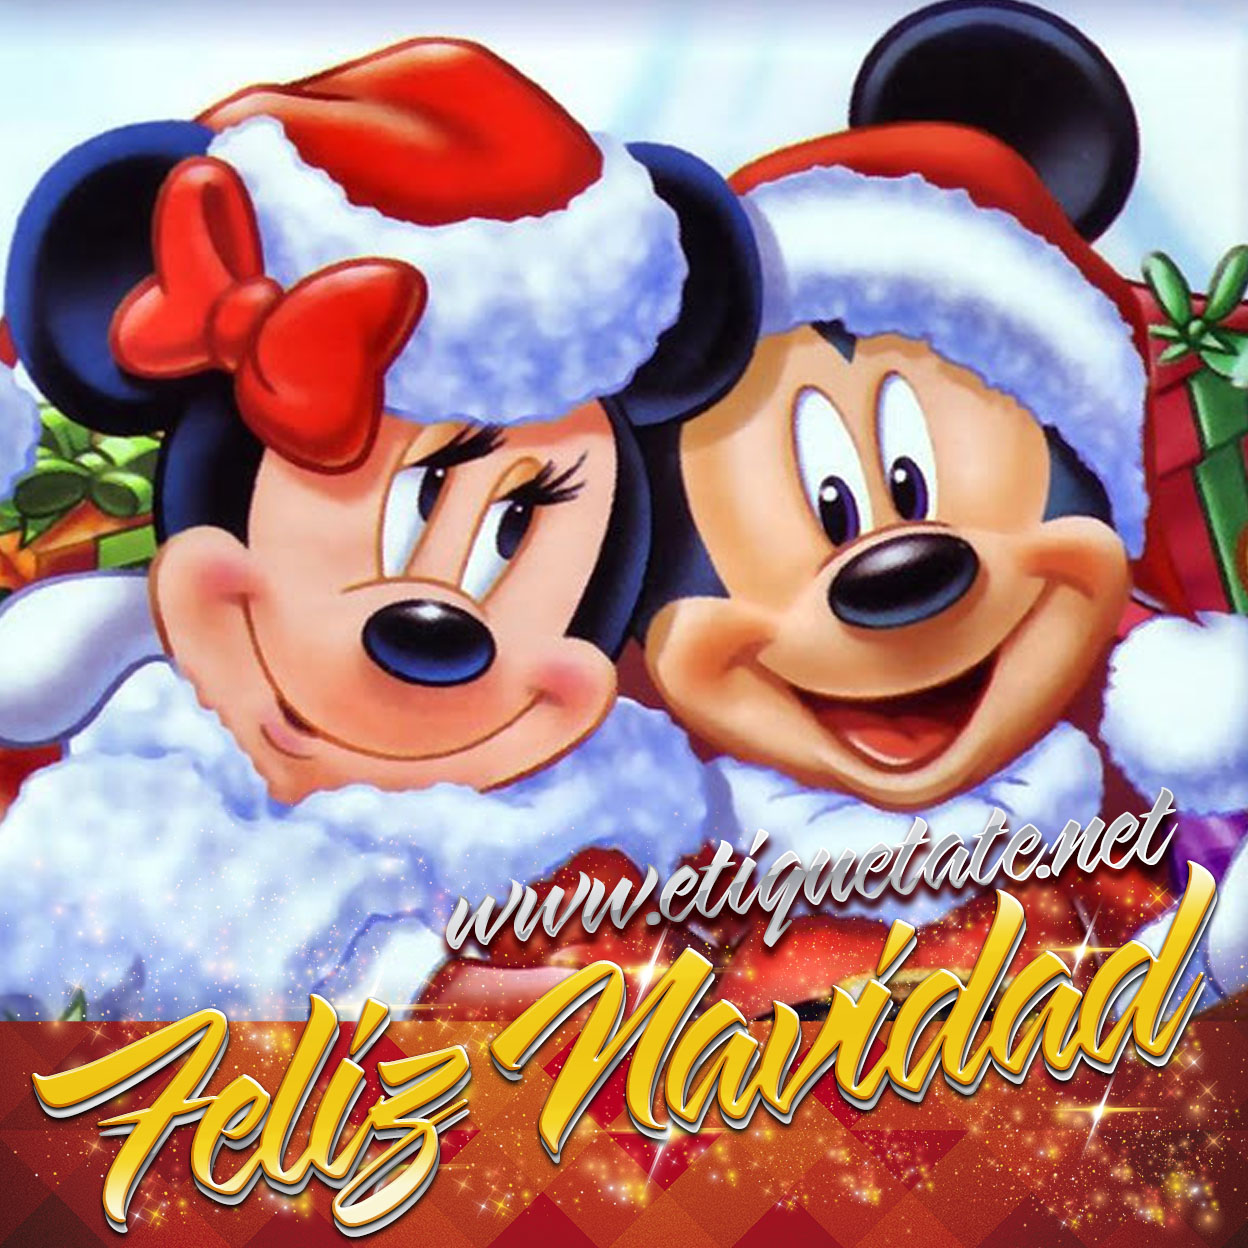 Descarga Gratis     Im  Genes Navide  As De Mickey Mouse Y Minnie Para